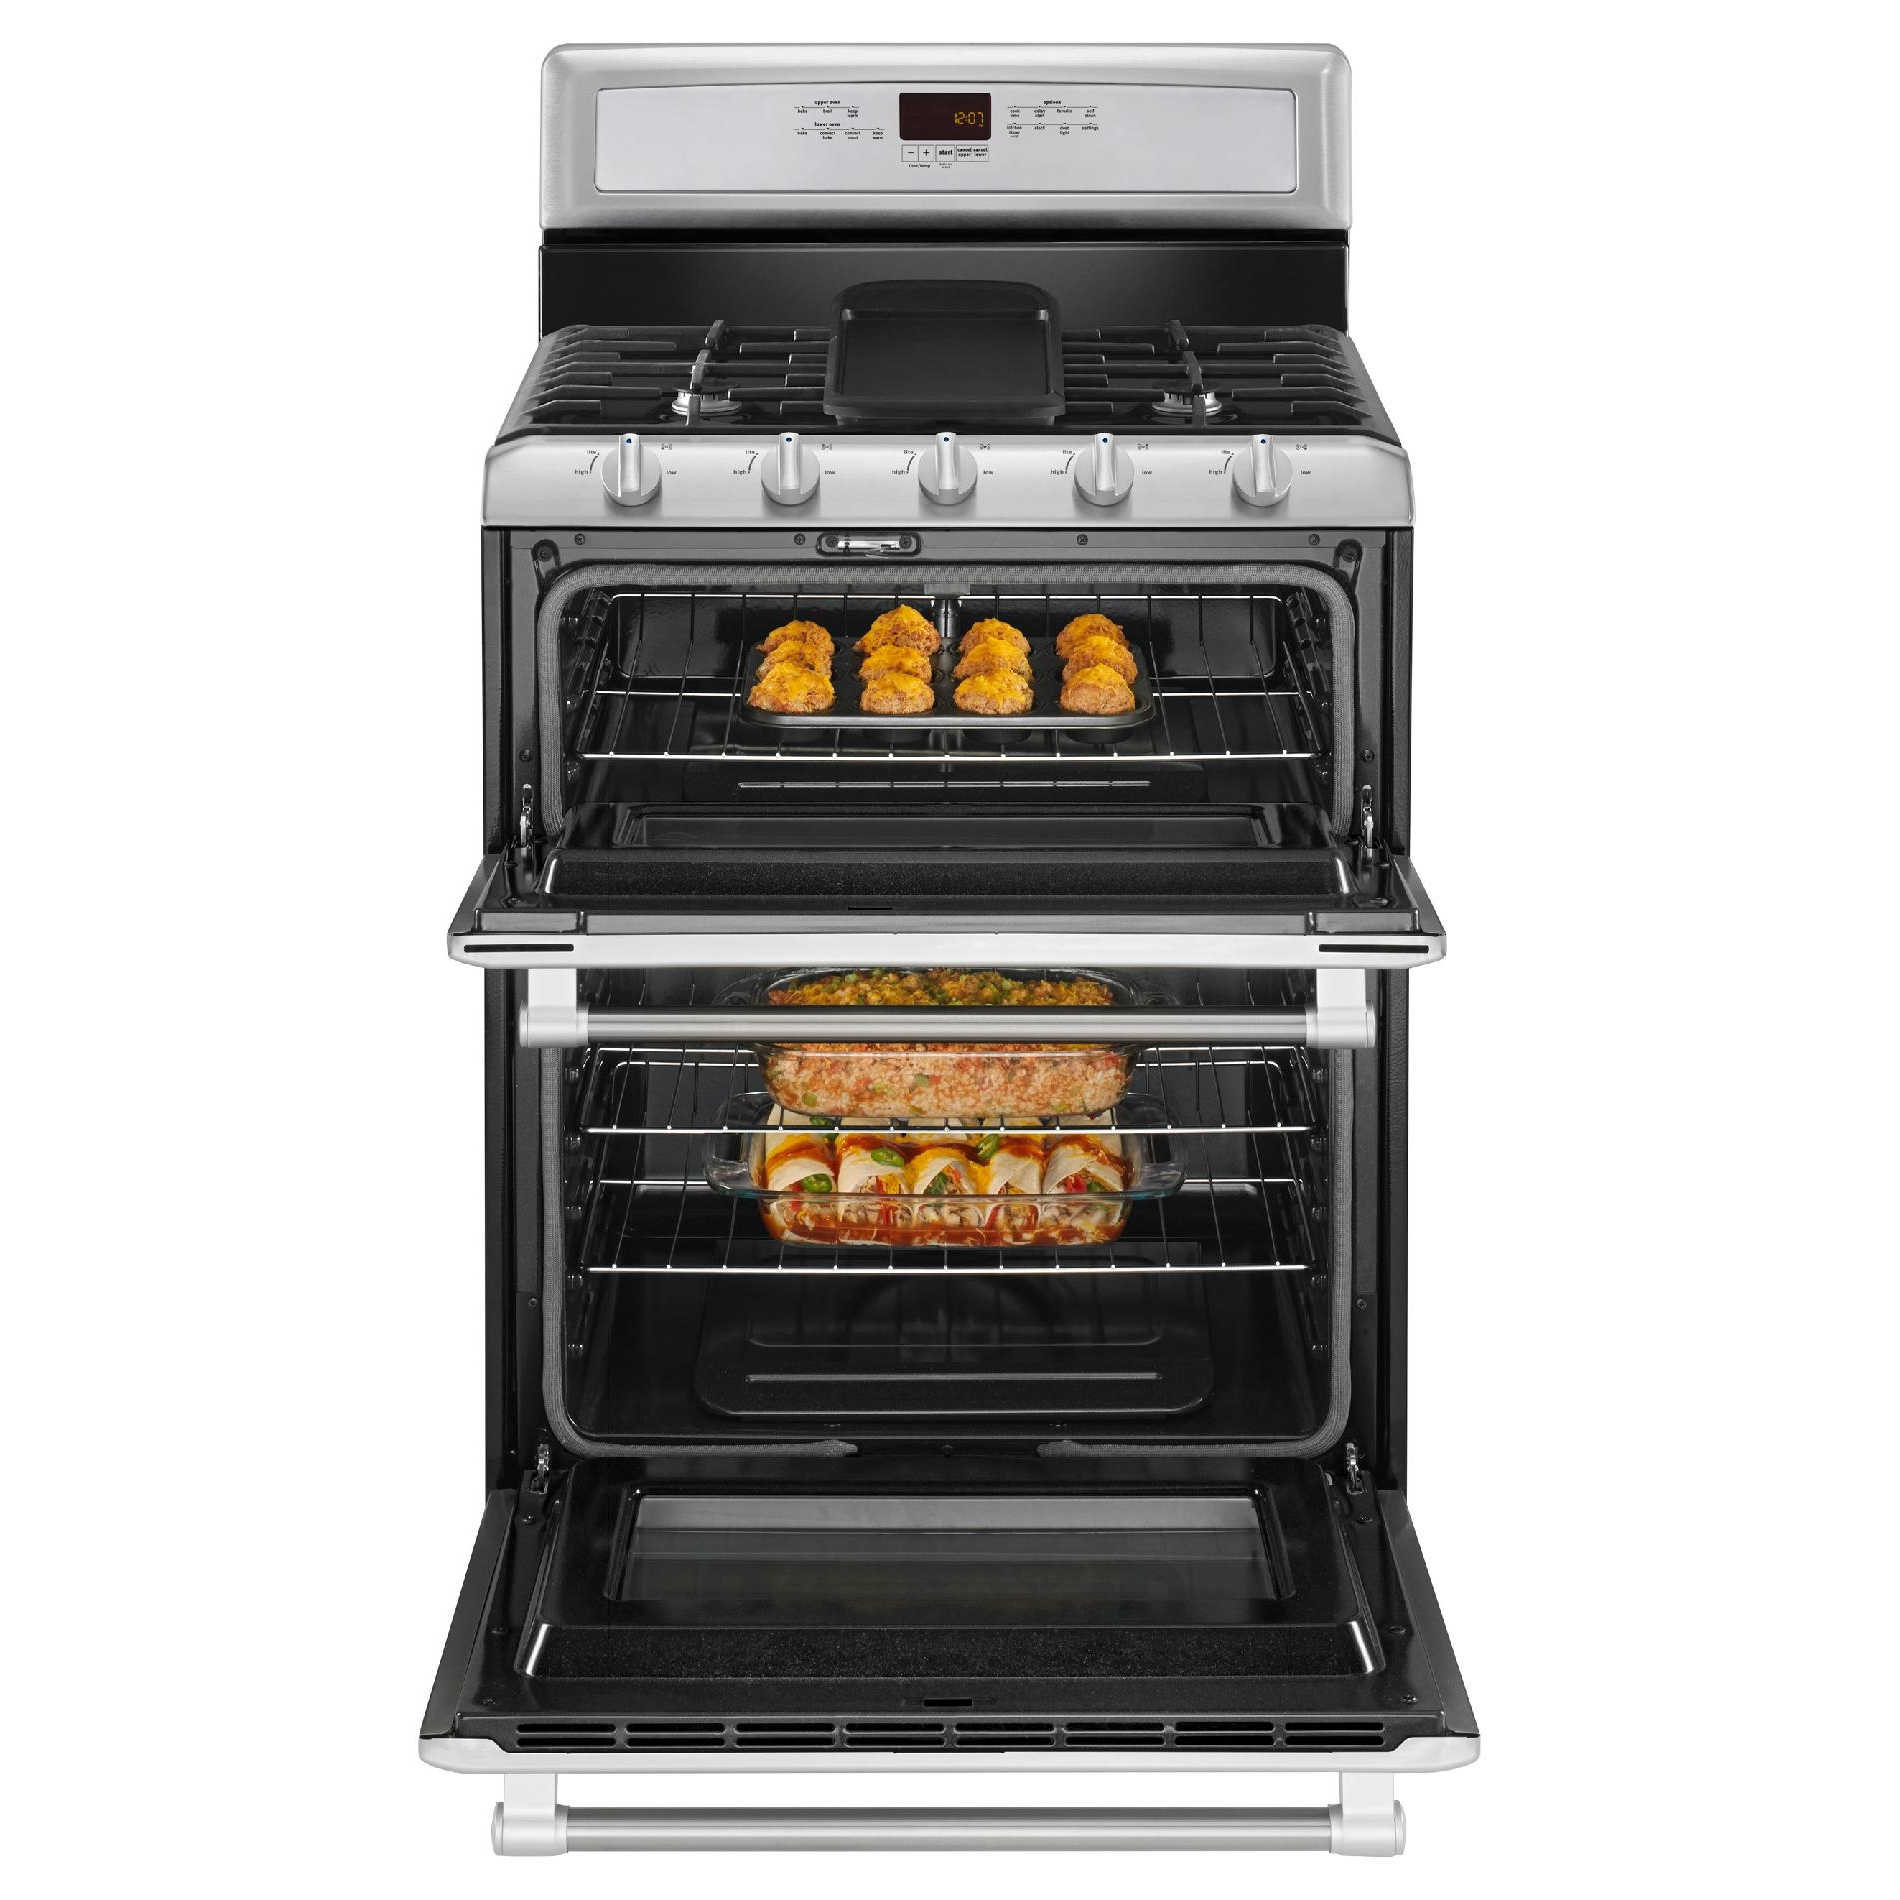 Maytag MGT8820DS 6.0 cu. ft. Double-Oven Gas Range - Stainless Steel